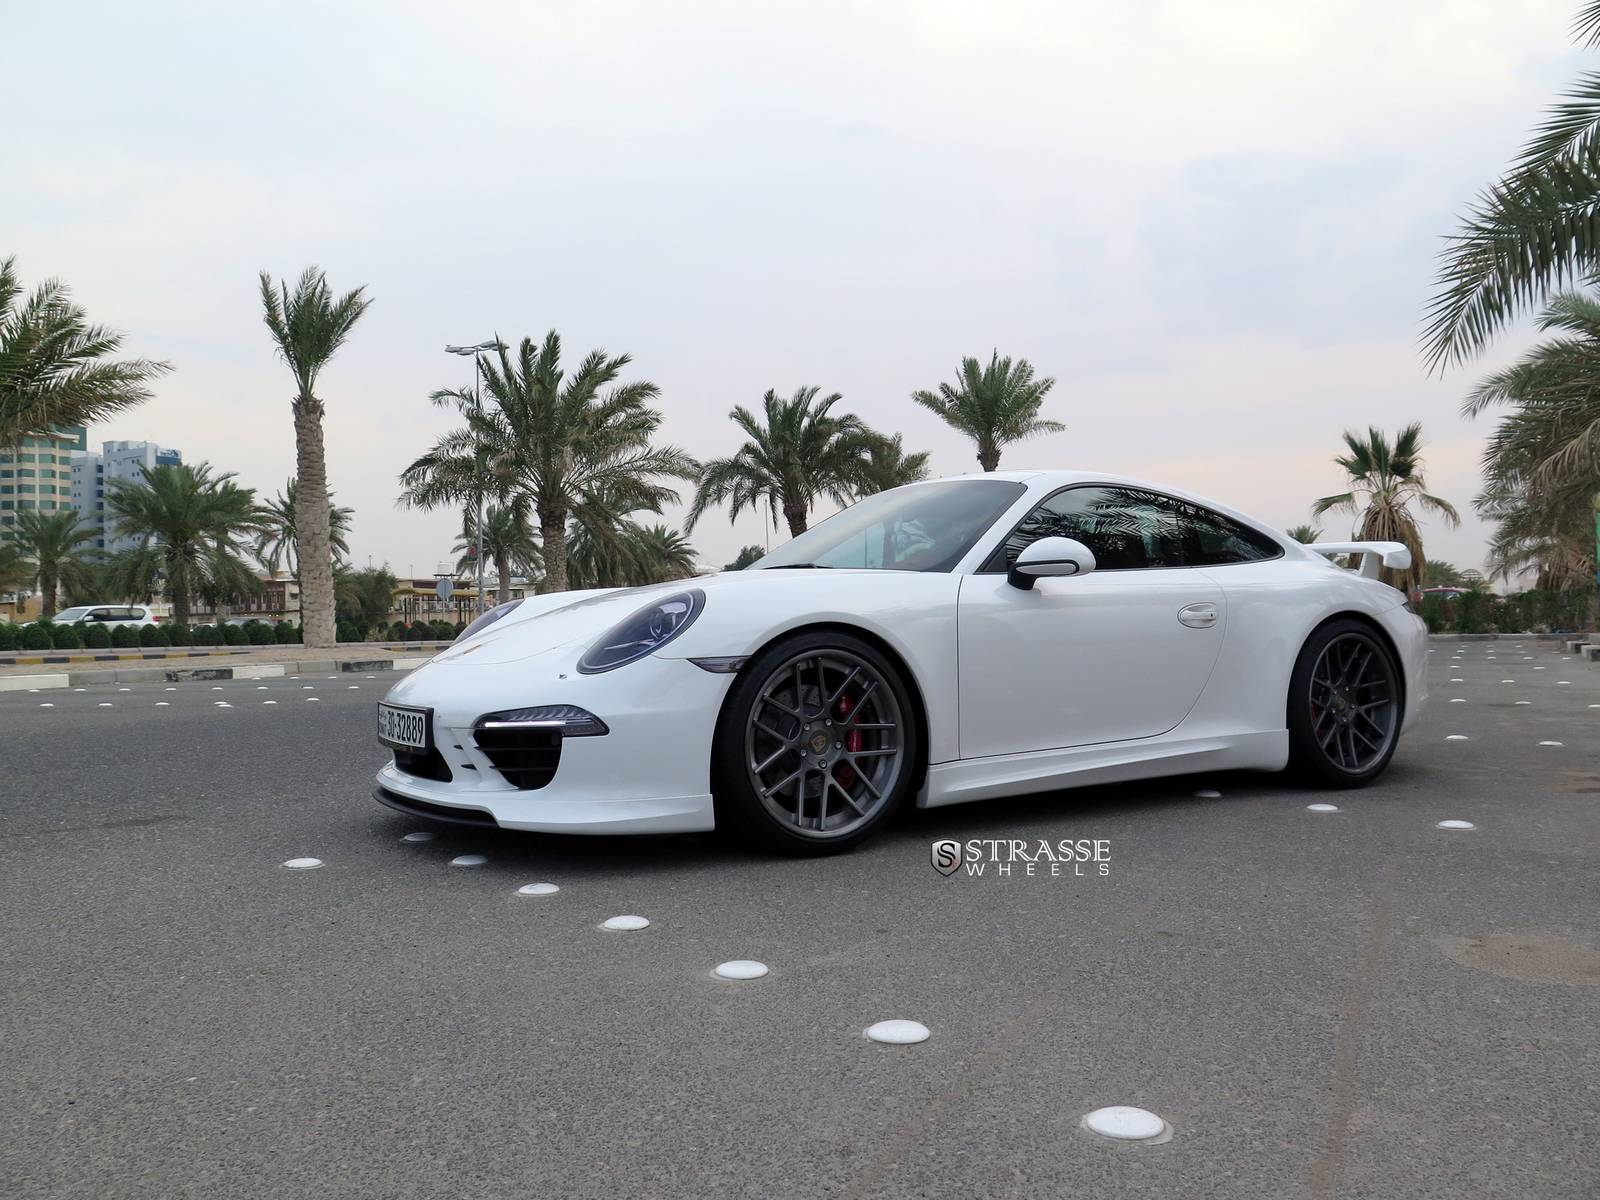 white metallic techart 911 carrera s with strasse wheels. Black Bedroom Furniture Sets. Home Design Ideas